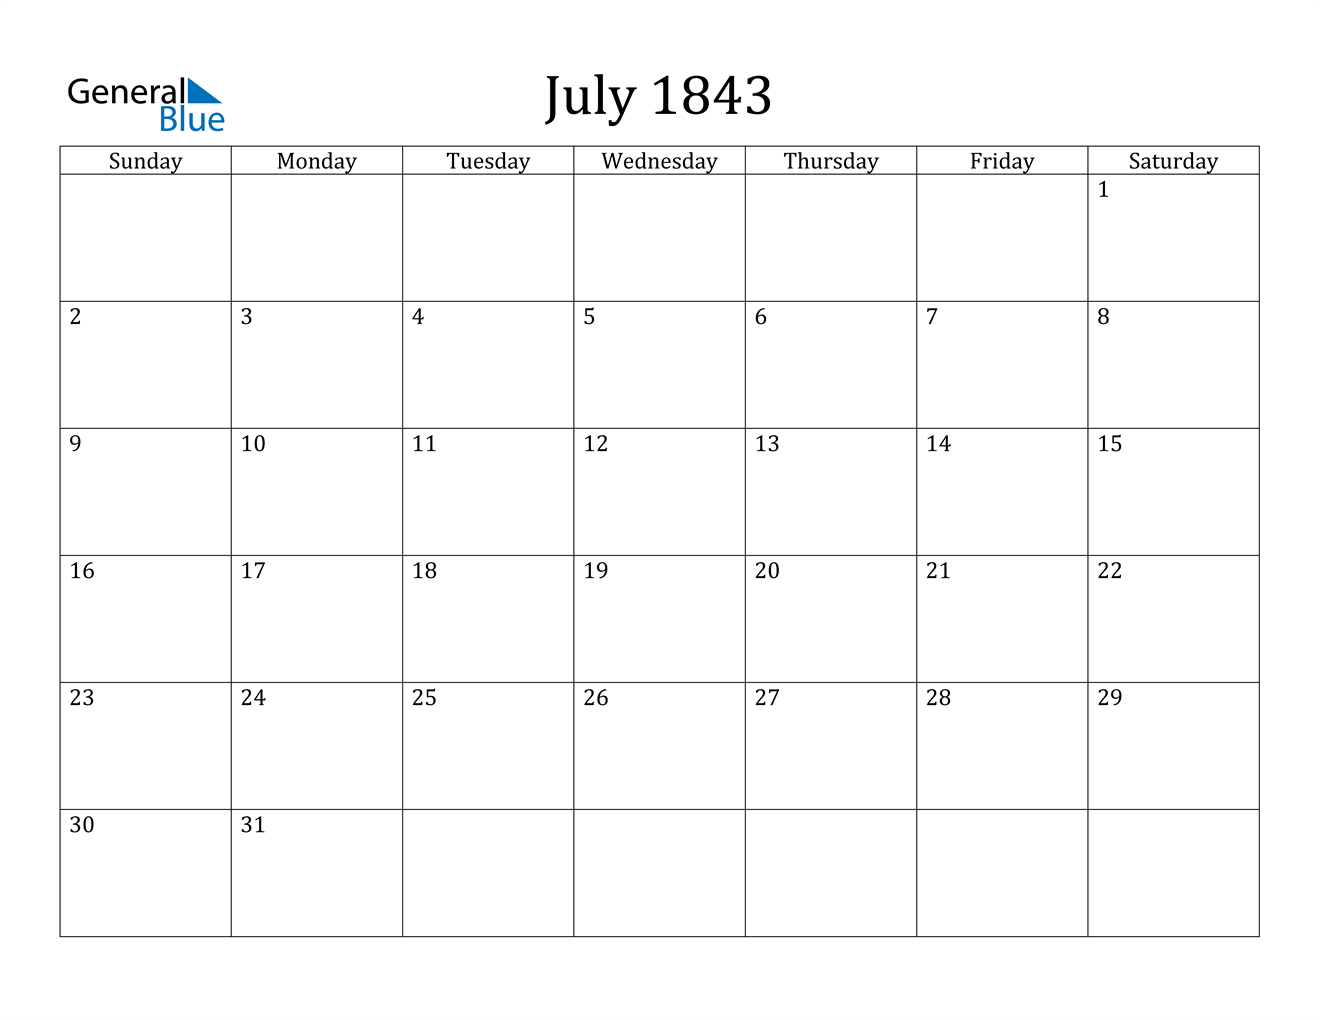 Image of July 1843 Calendar